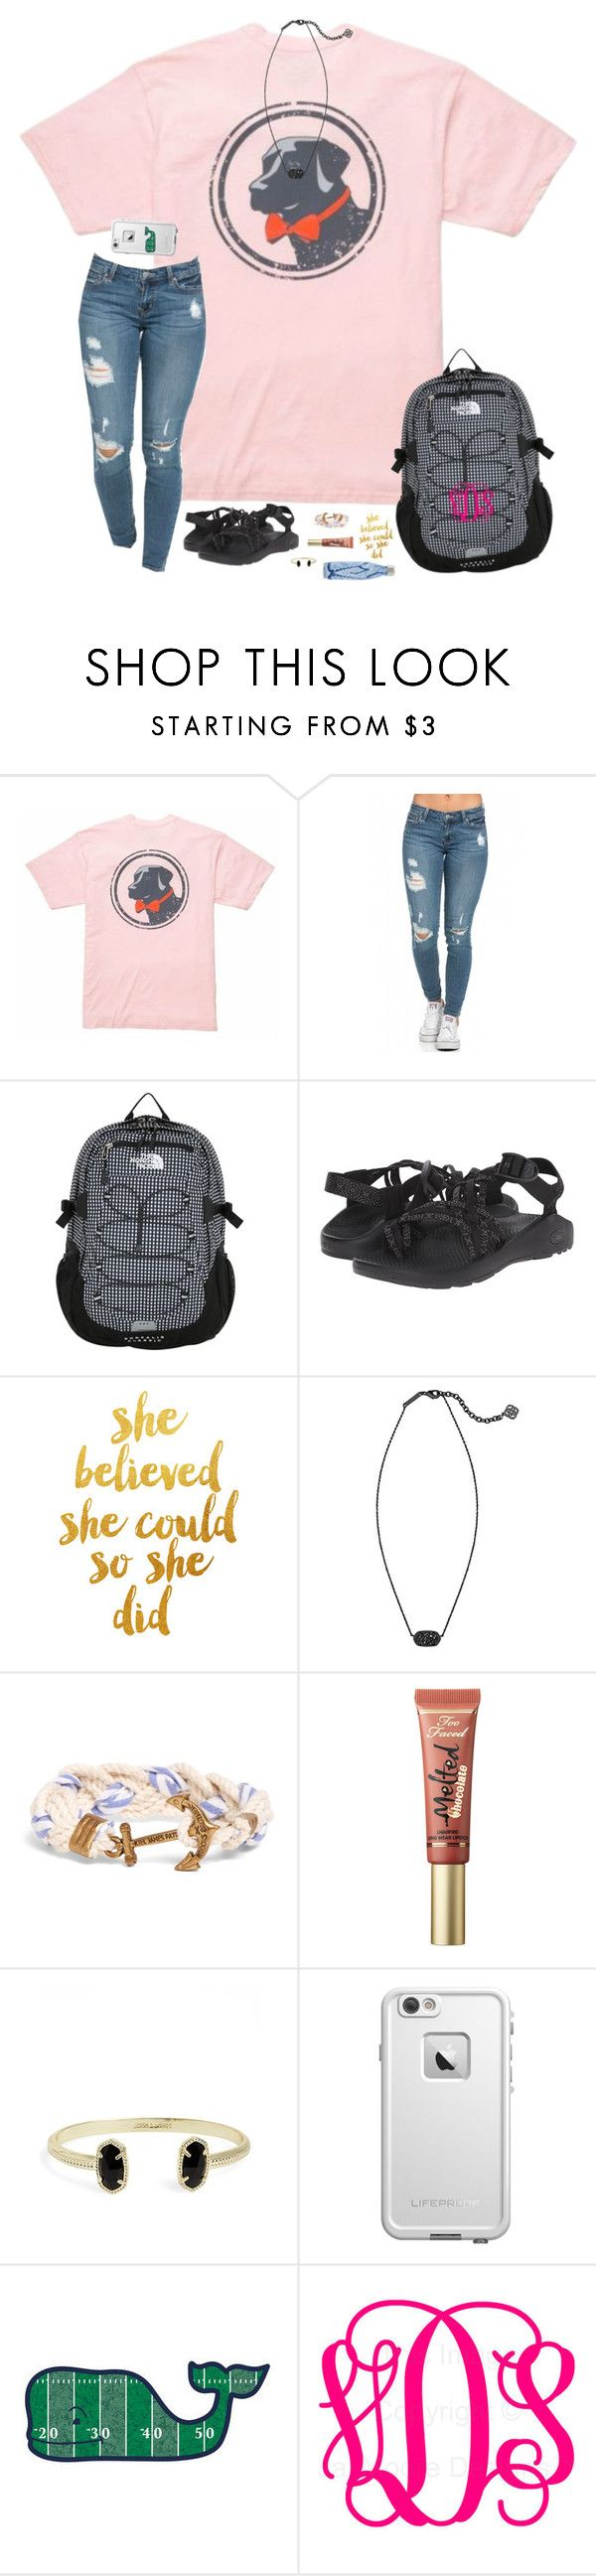 """""""Don't forget to enter the two contests I have going on! (Read D!)"""" by hopemarlee ❤ liked on Polyvore featuring Southern Proper, The North Face, Chaco, Kendra Scott, Brooks Brothers, Too Faced Cosmetics, LifeProof, Vineyard Vines, preppybrandcontest2k16 and hawaiispringbreak2k16"""